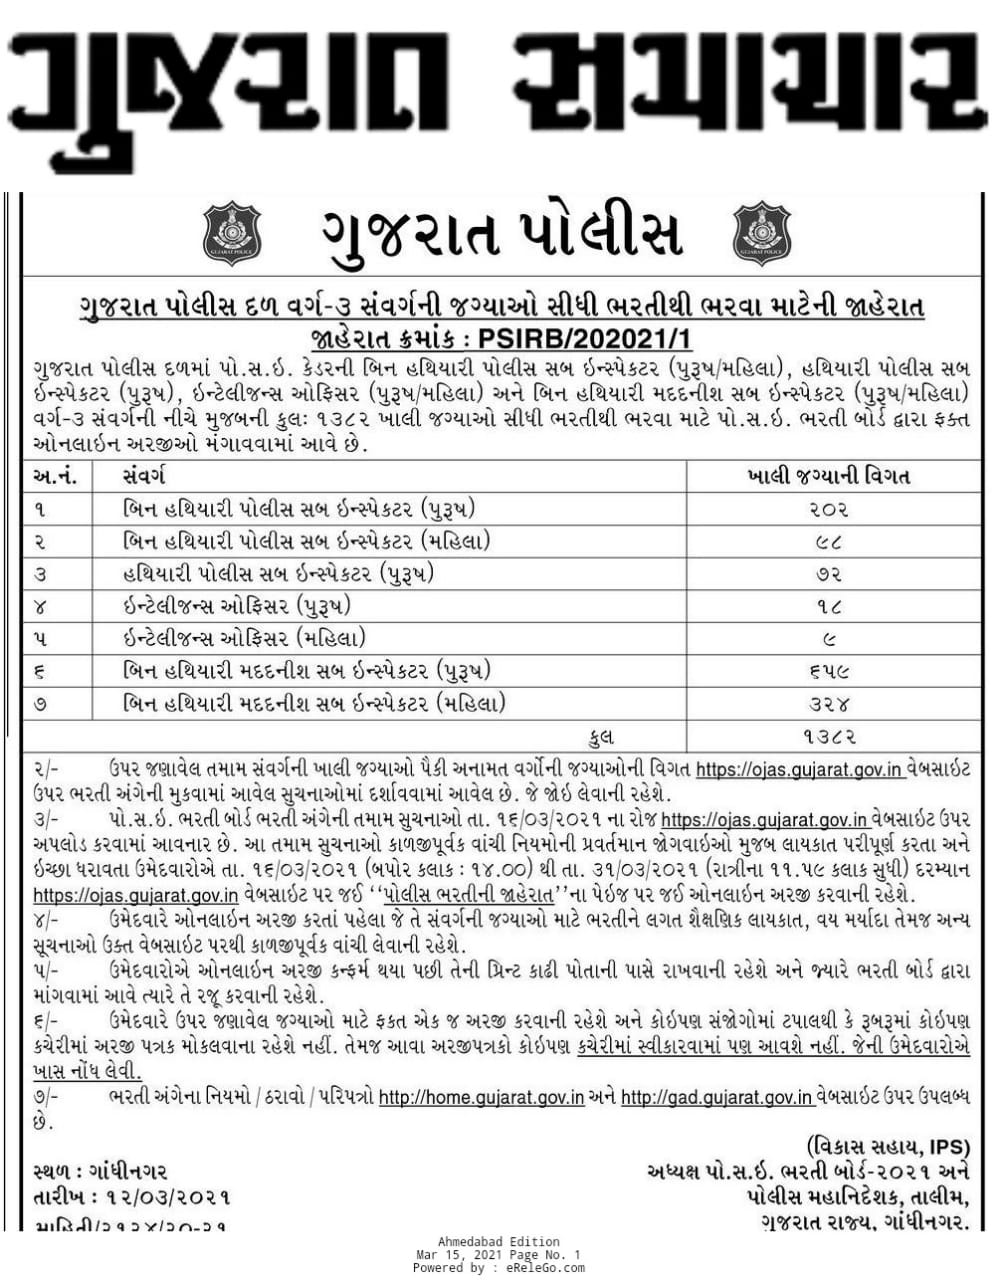 This recruitment announcement for 1382 posts in Gujarat Police Force